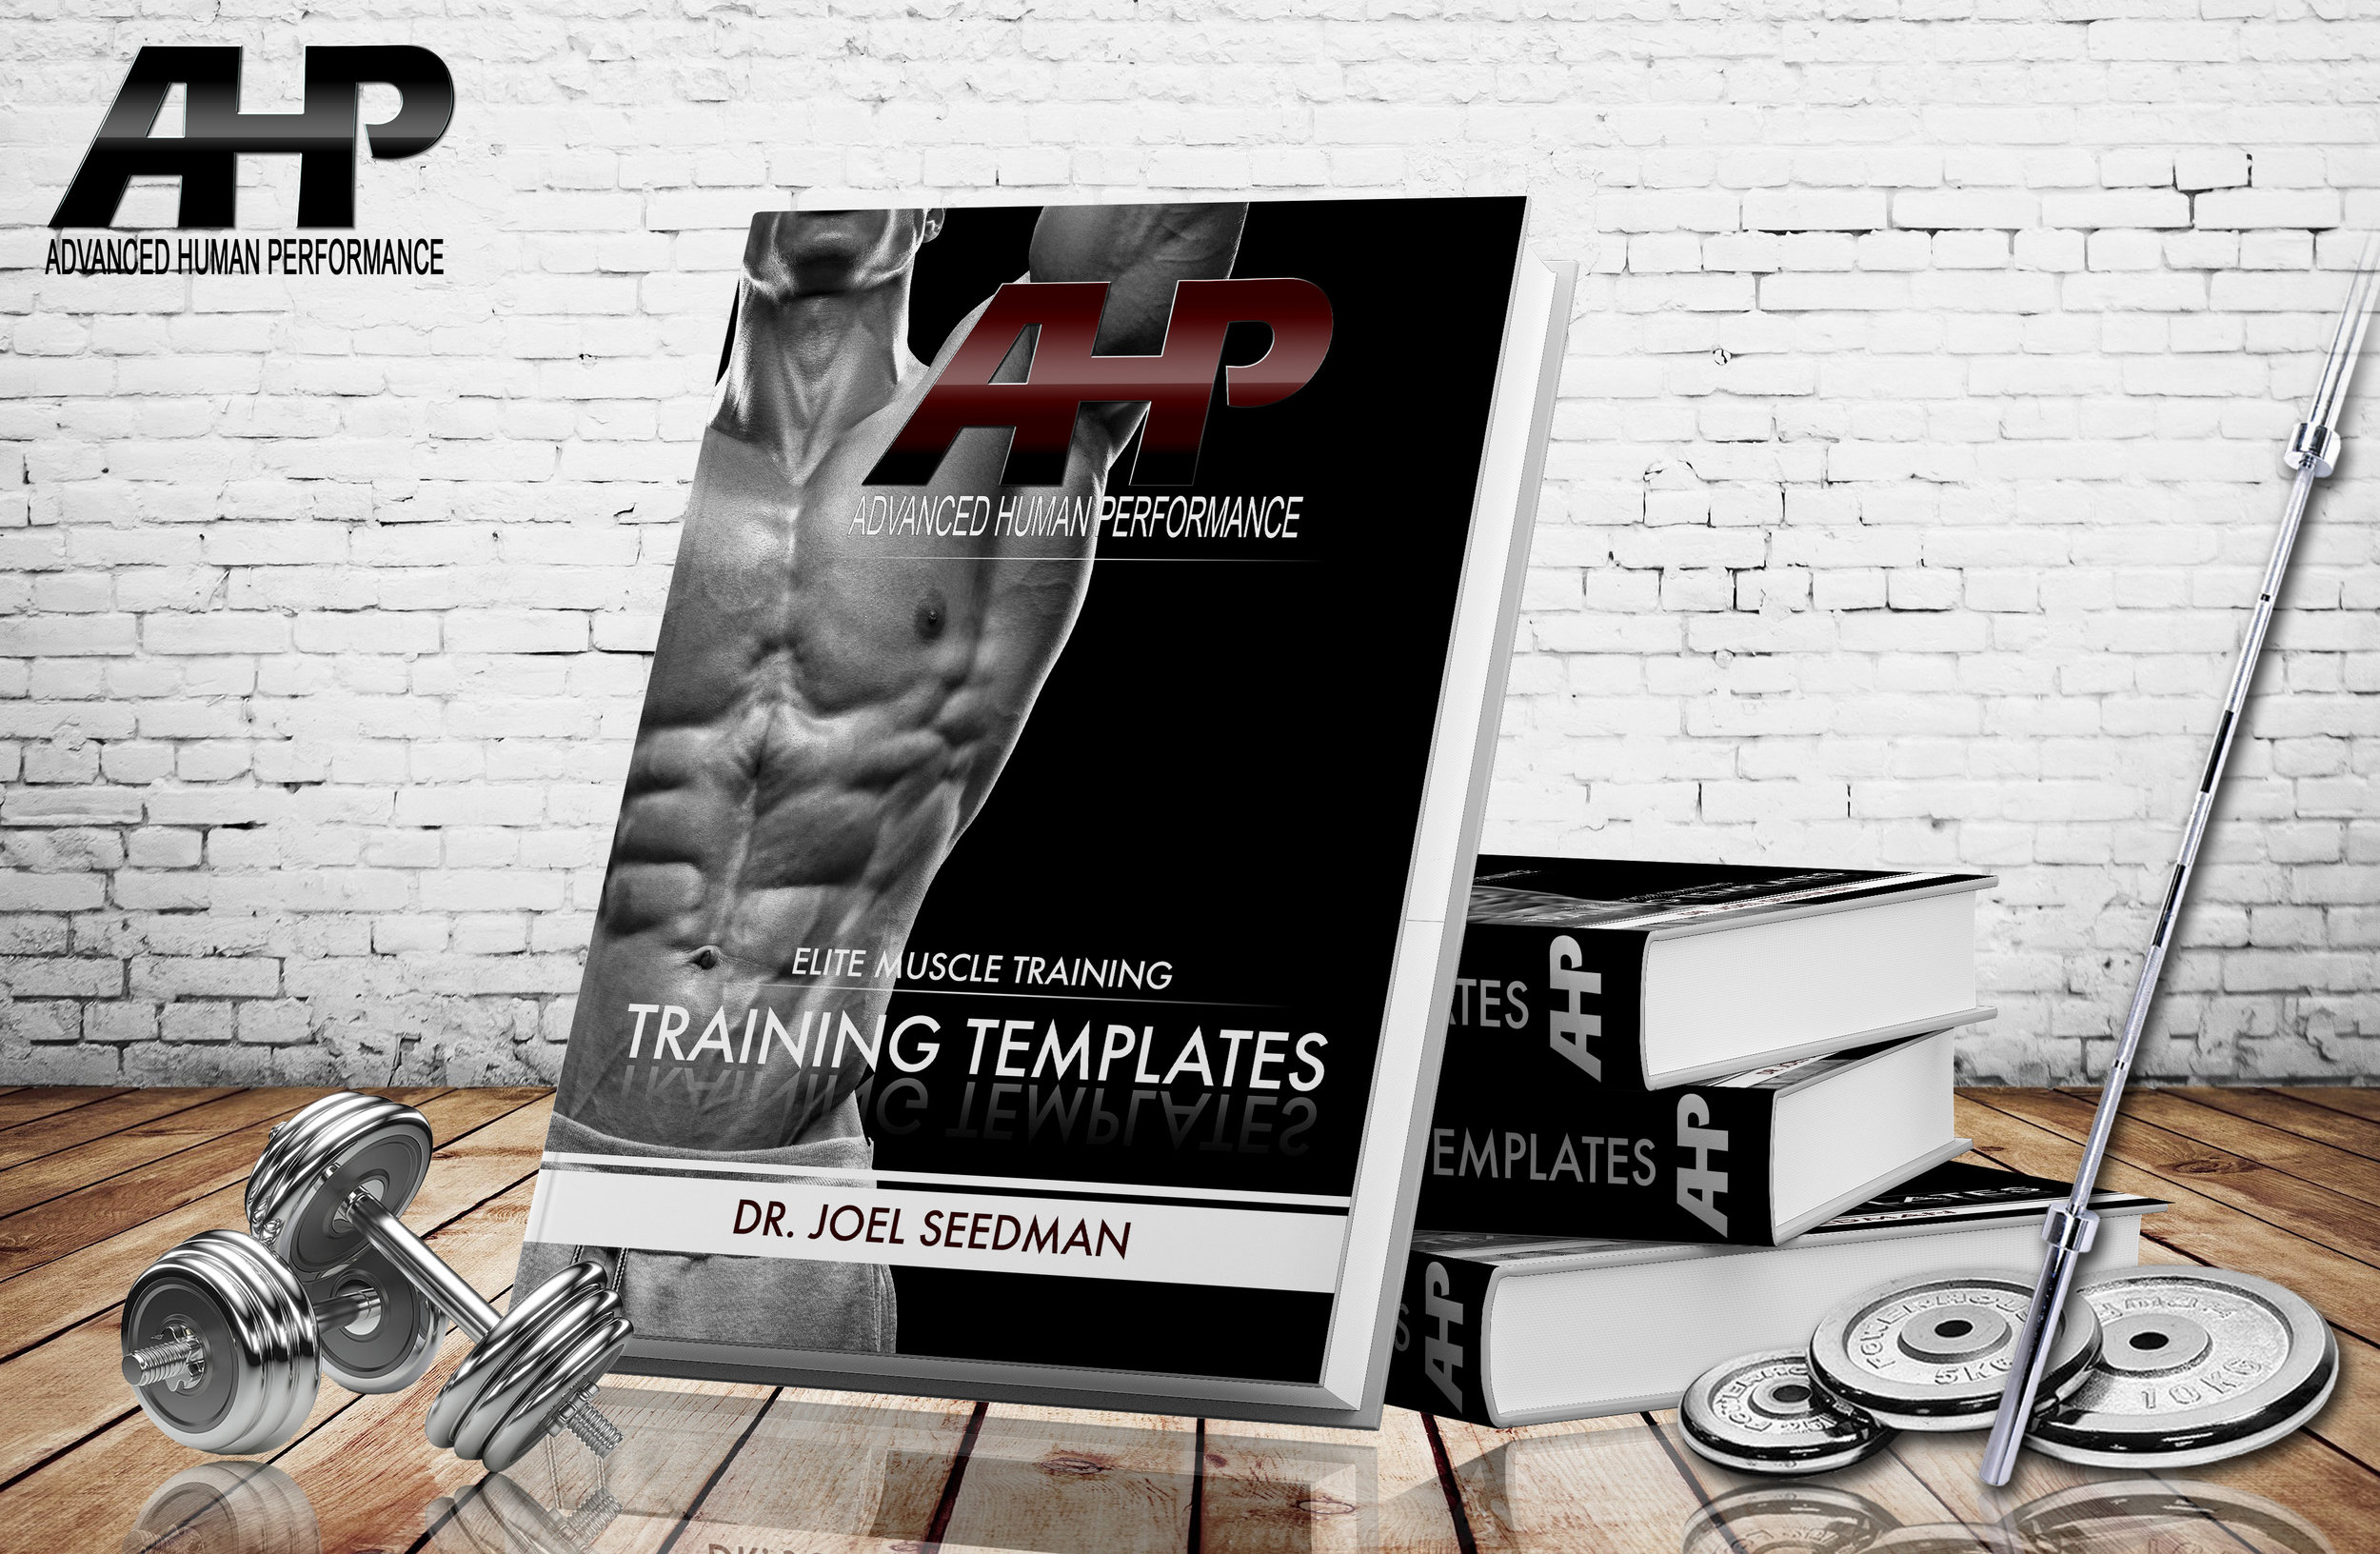 Training Templates